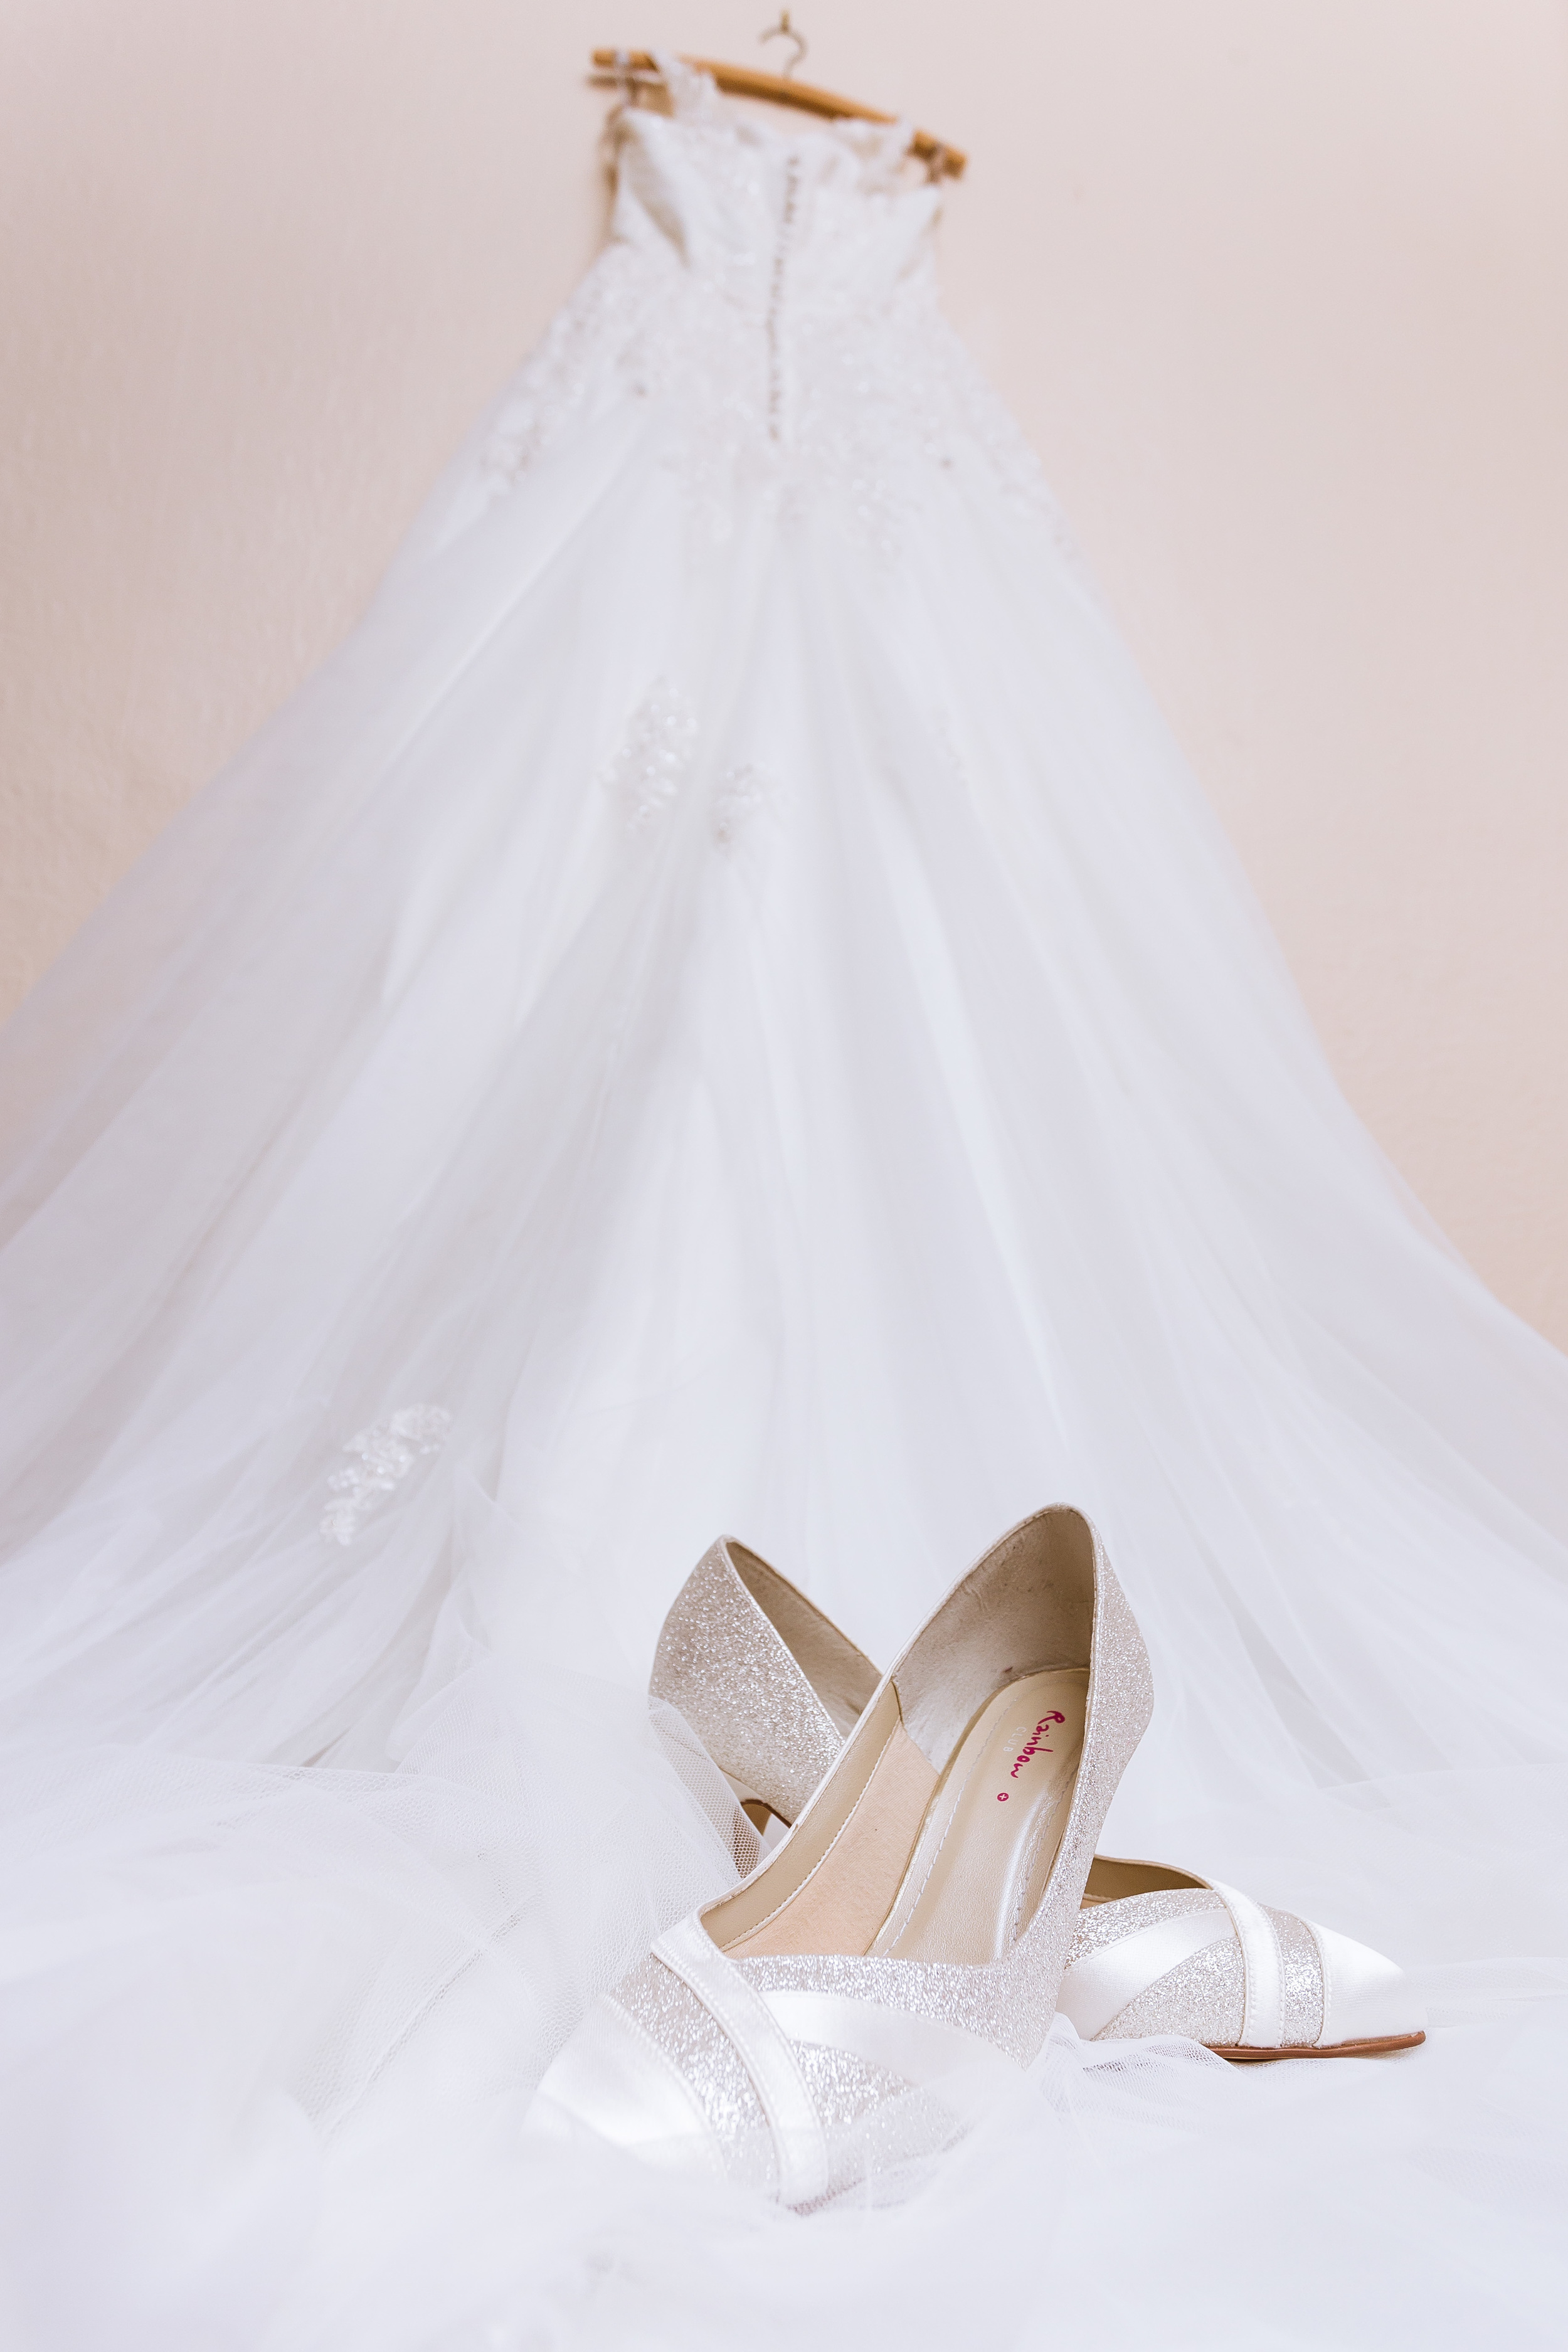 Silk and lace Bridal High heels placed on top of her wedding dress, the sweep of the dress pulls you down to the shoes